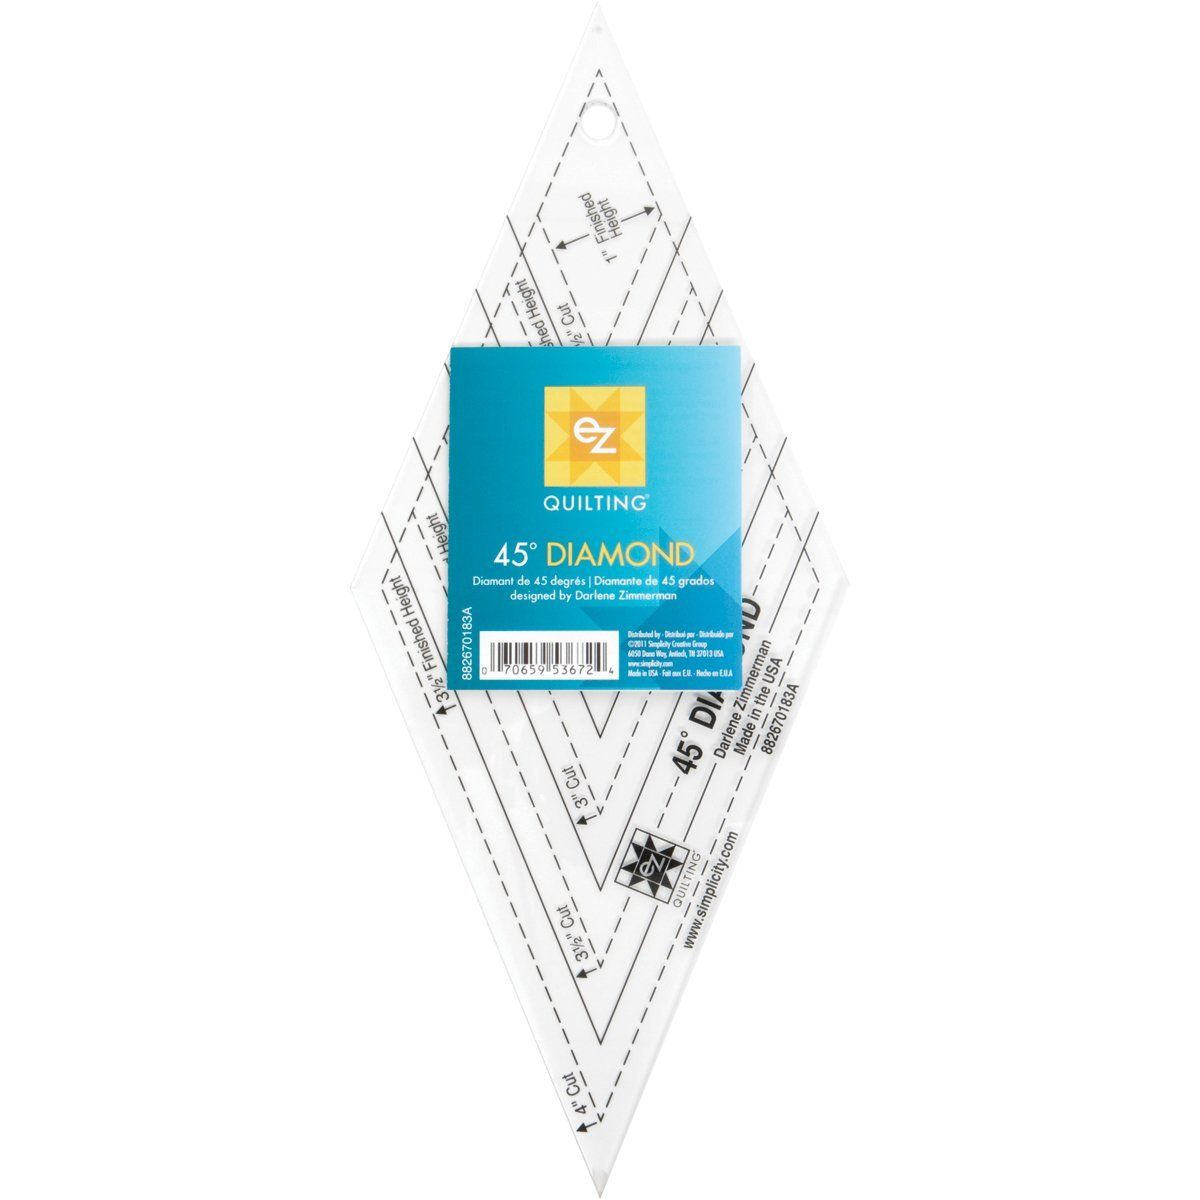 Ez Quilting 60 Degree Diamond Ruler Template Designed By